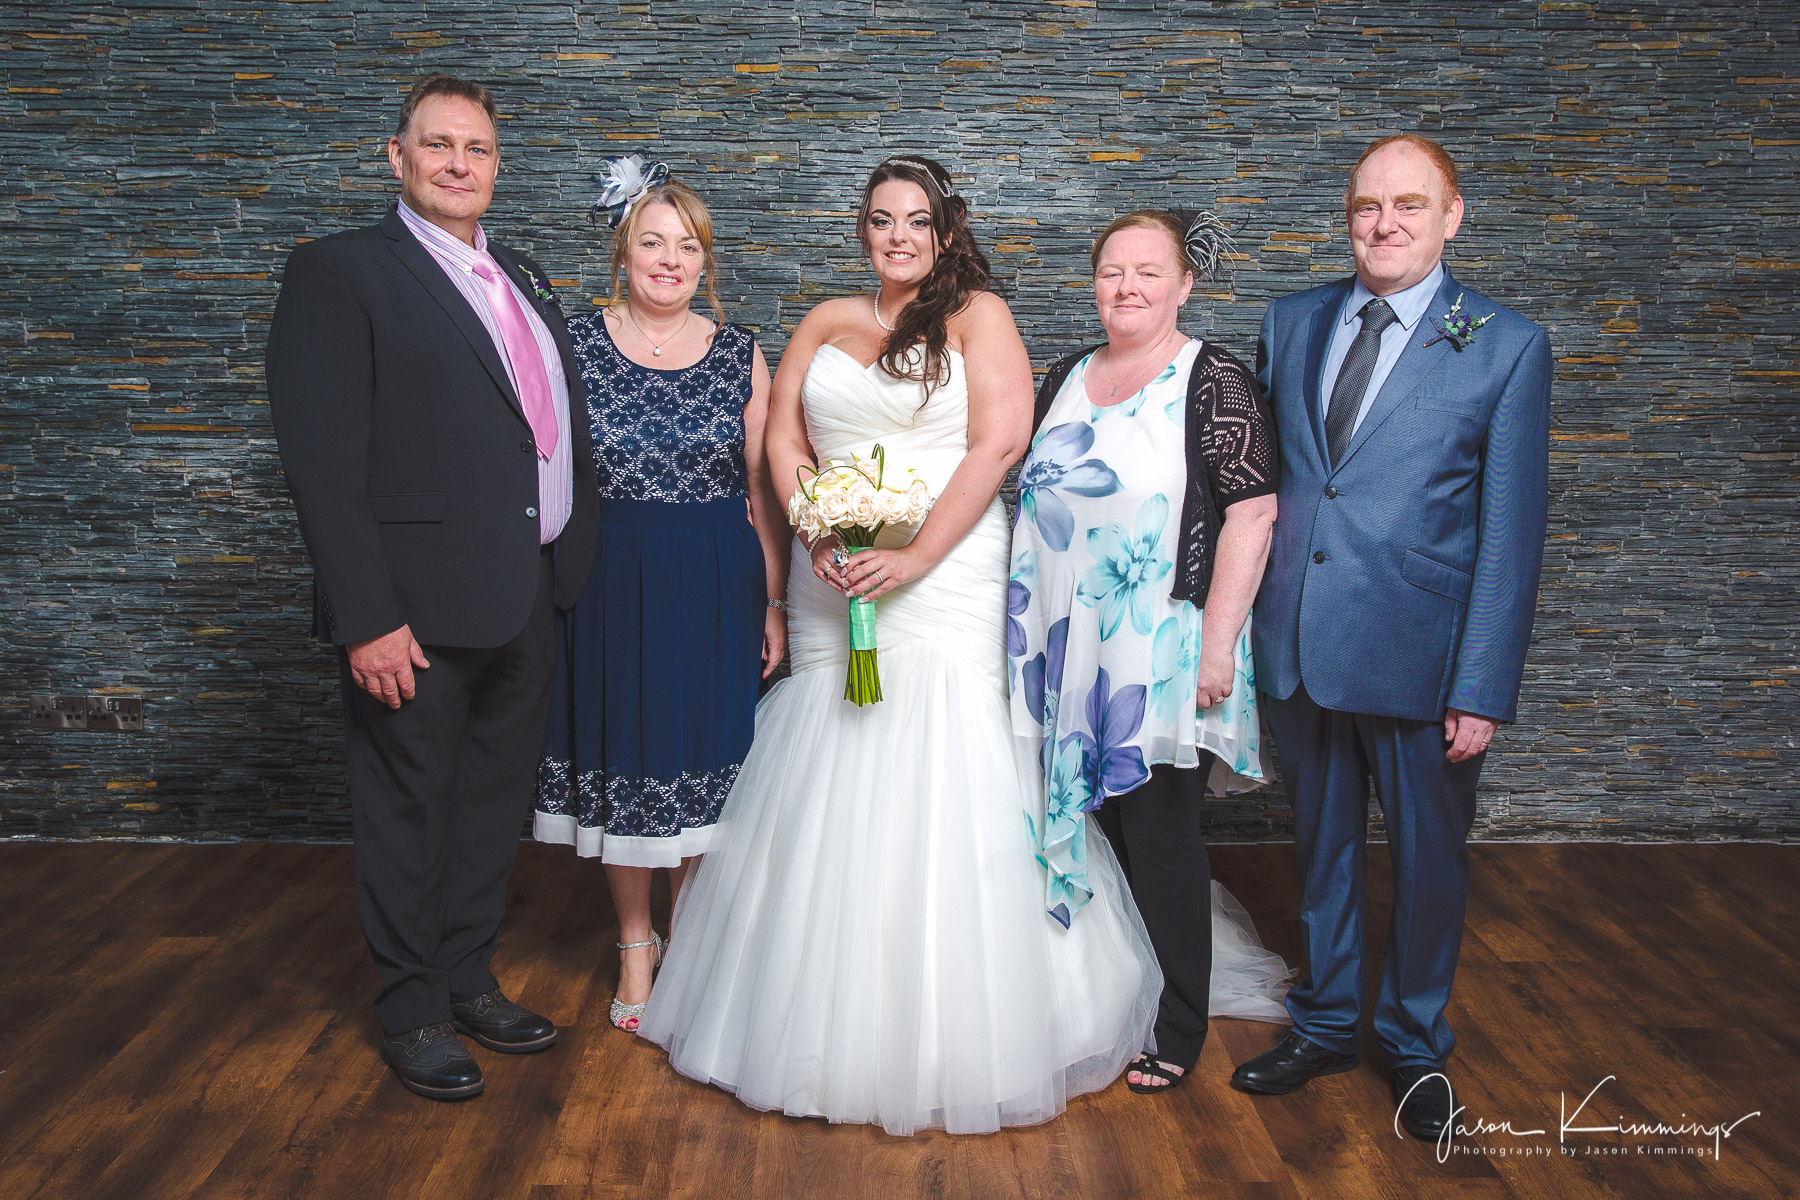 vu-wedding-photography-bathgate-19.jpg